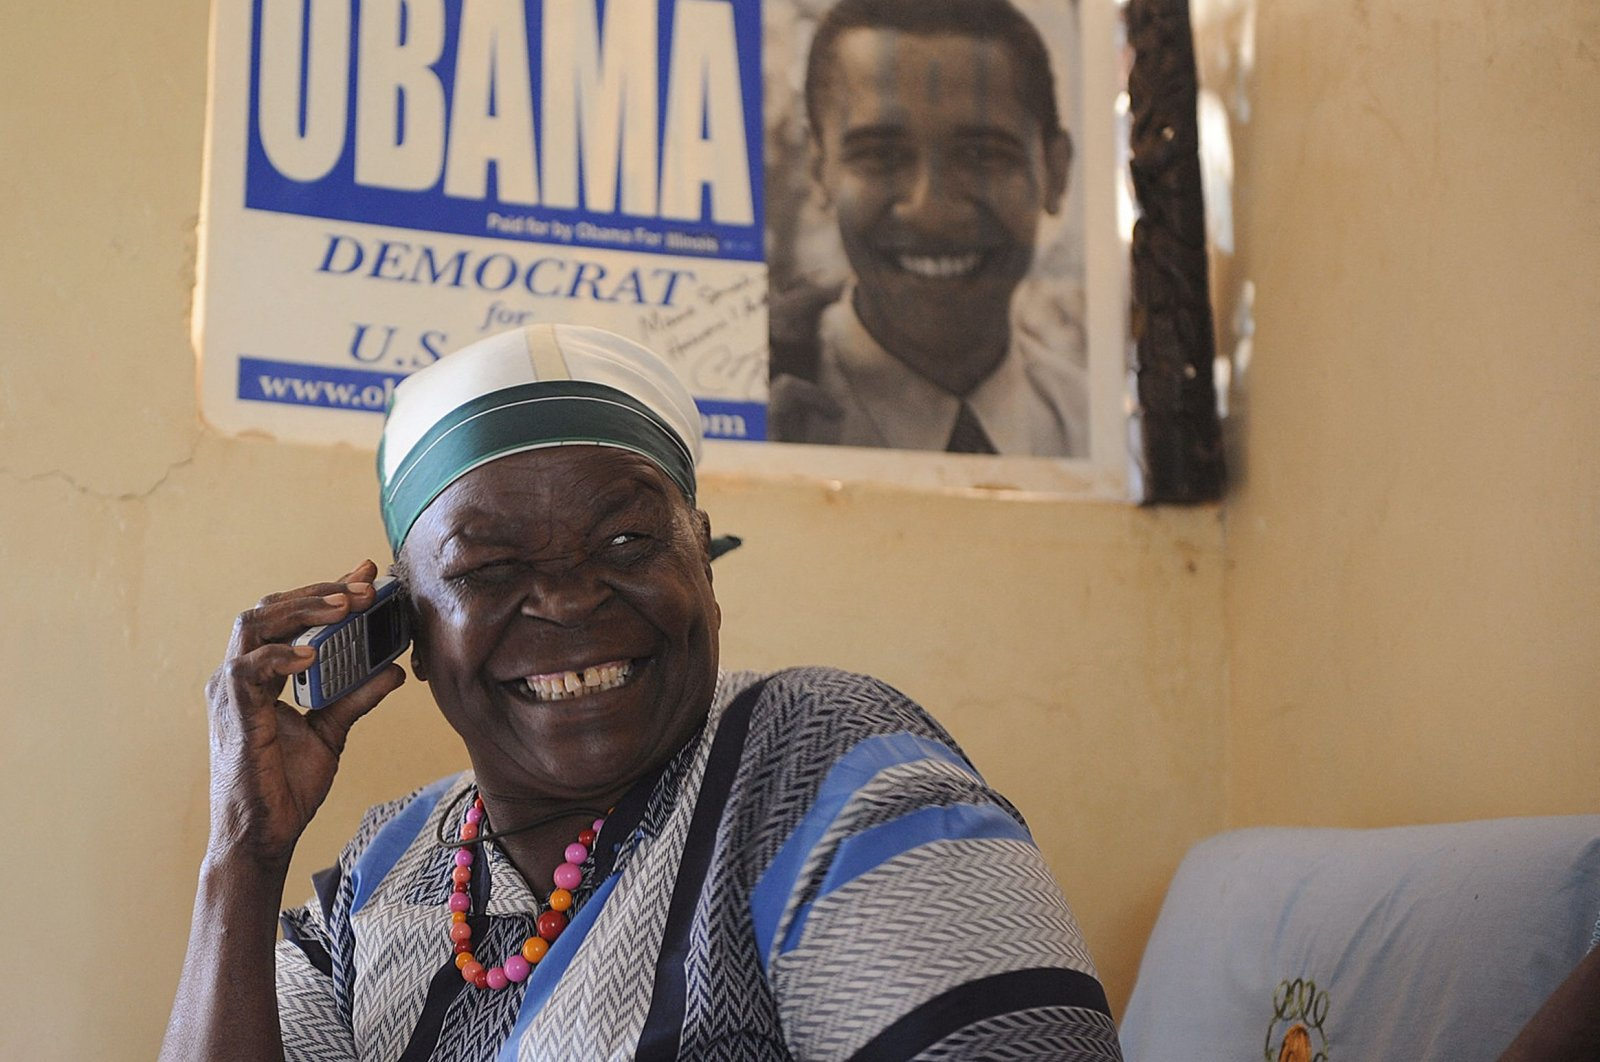 Mama Sarah Obama, grandmother of former U.S. President Barack Obama, shows a relative some old newspaper photos of her grandson, soon after he gave an acceptance speech at the Democratic National Convention in Denver, in Nairobi, Kenya, Aug. 29, 2008. (AFP Photo)